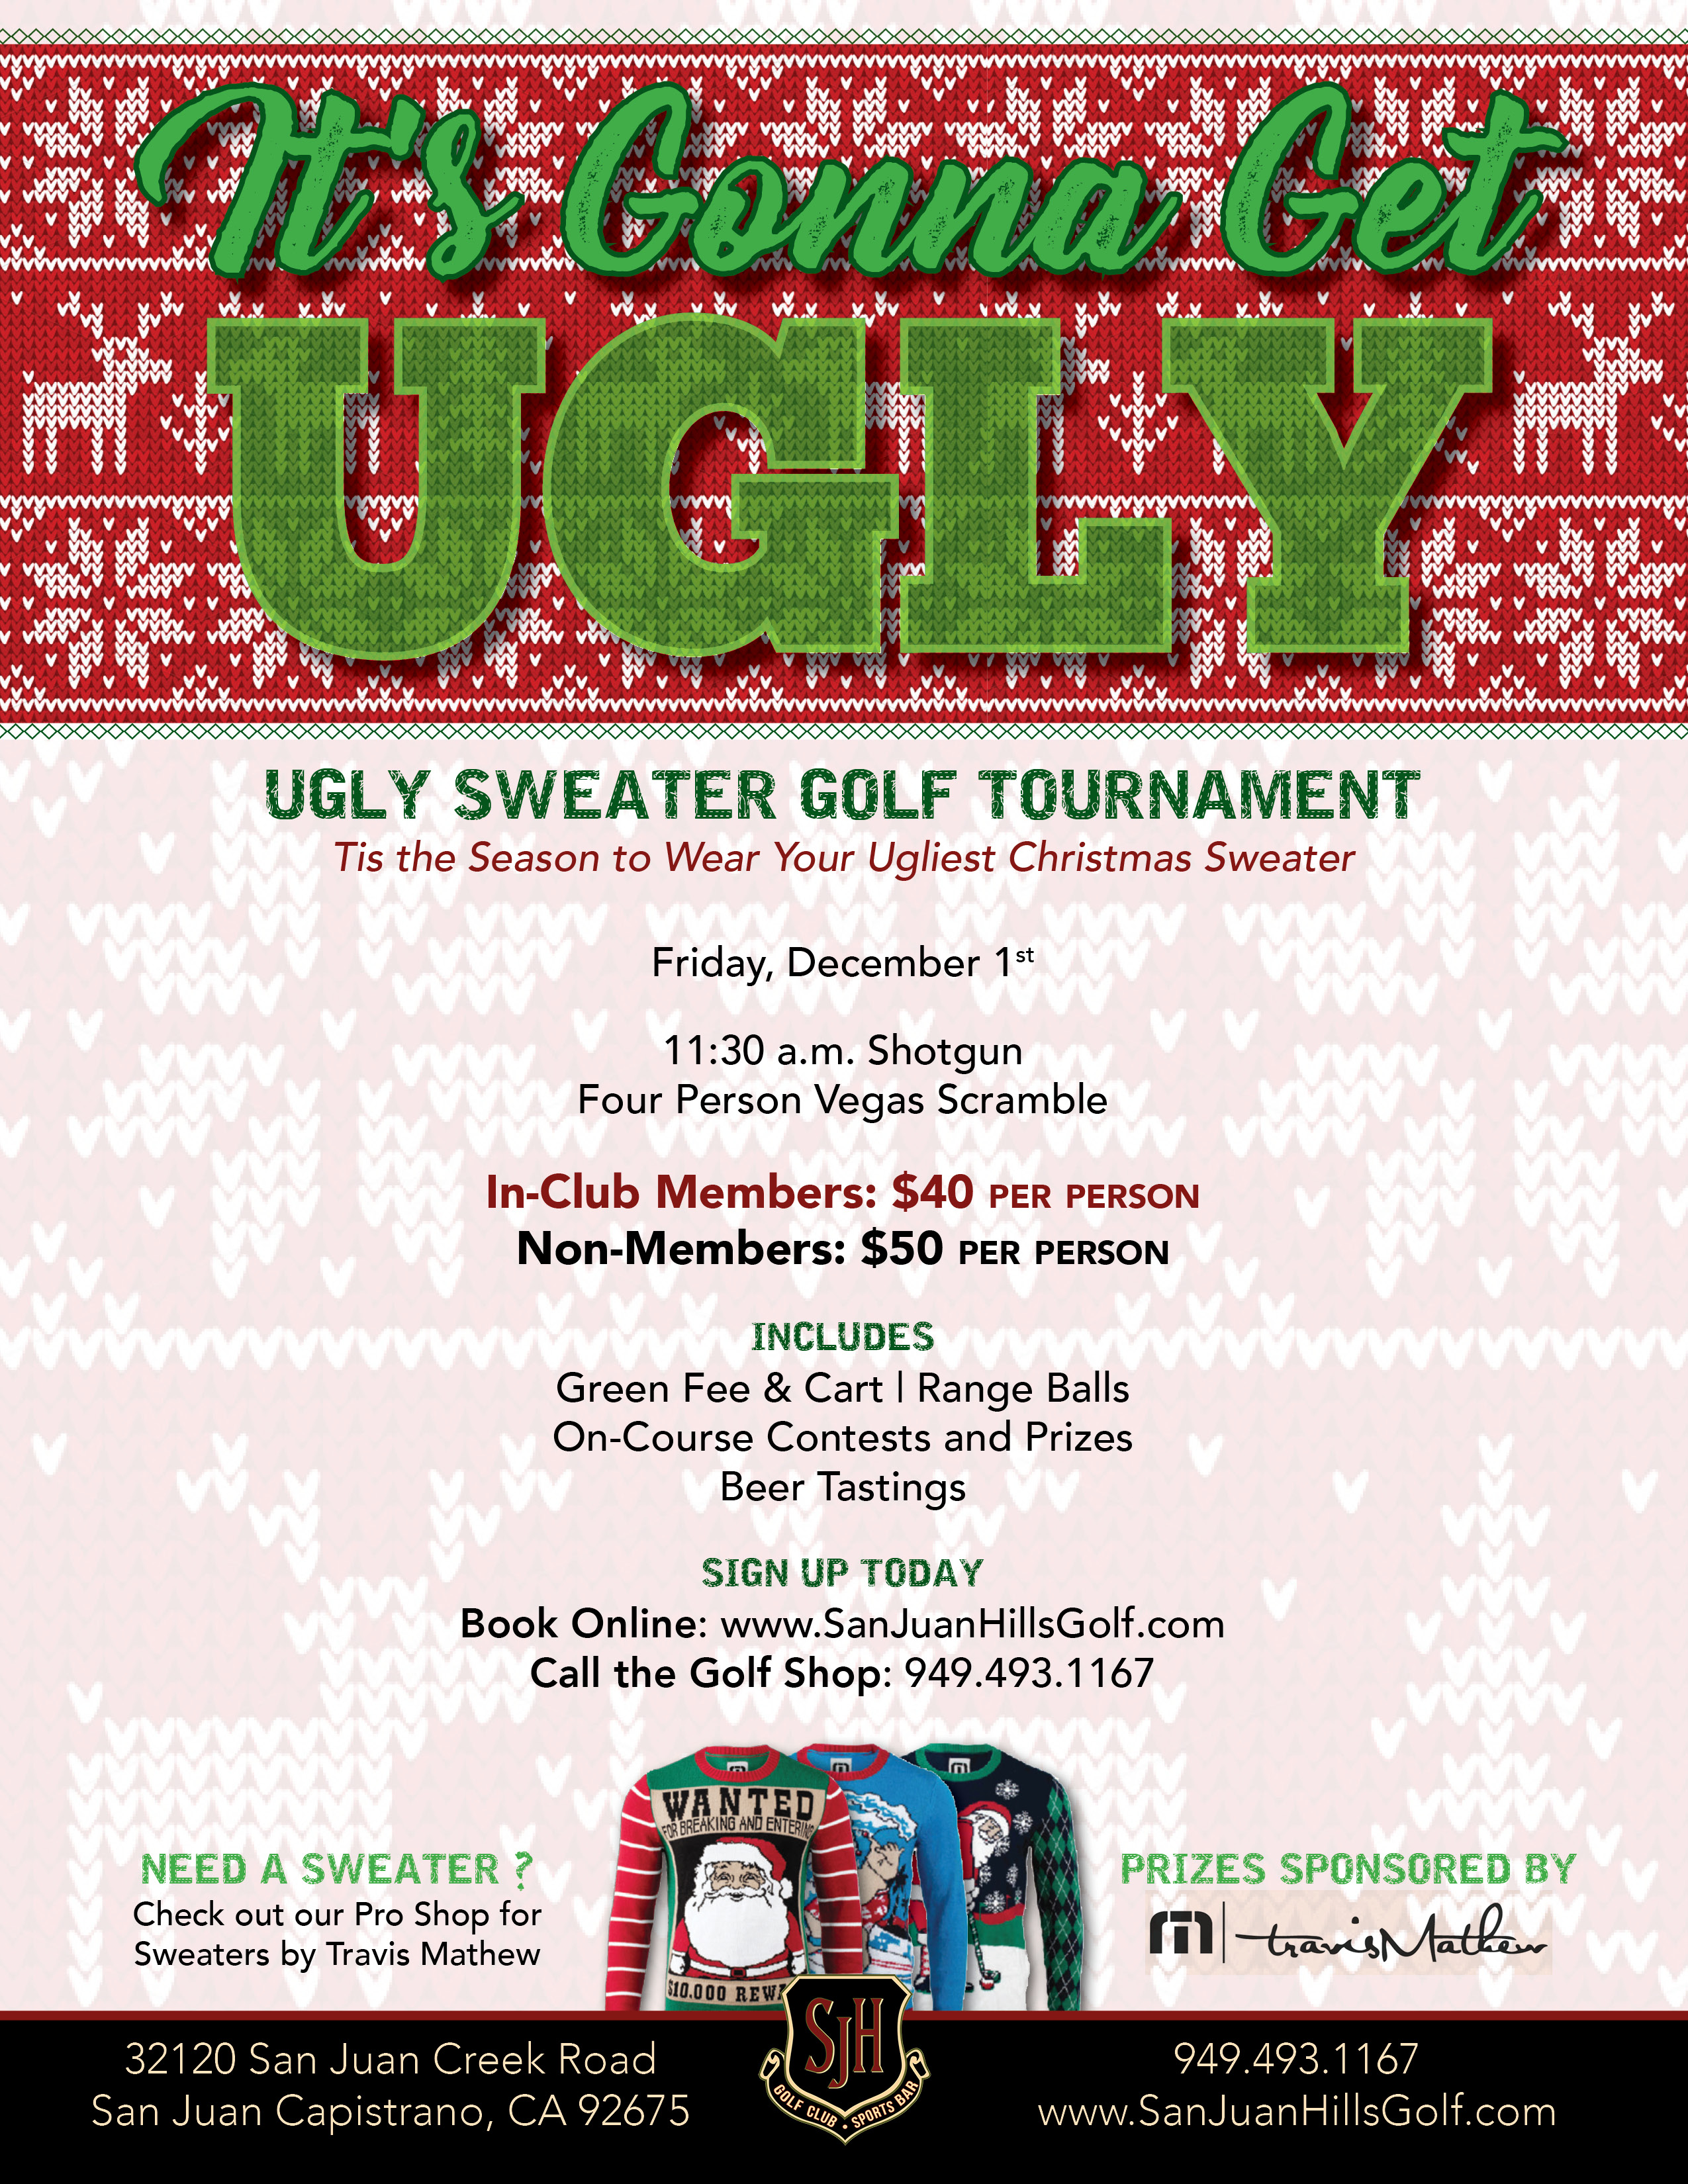 Ugly Sweater Golf Tournament